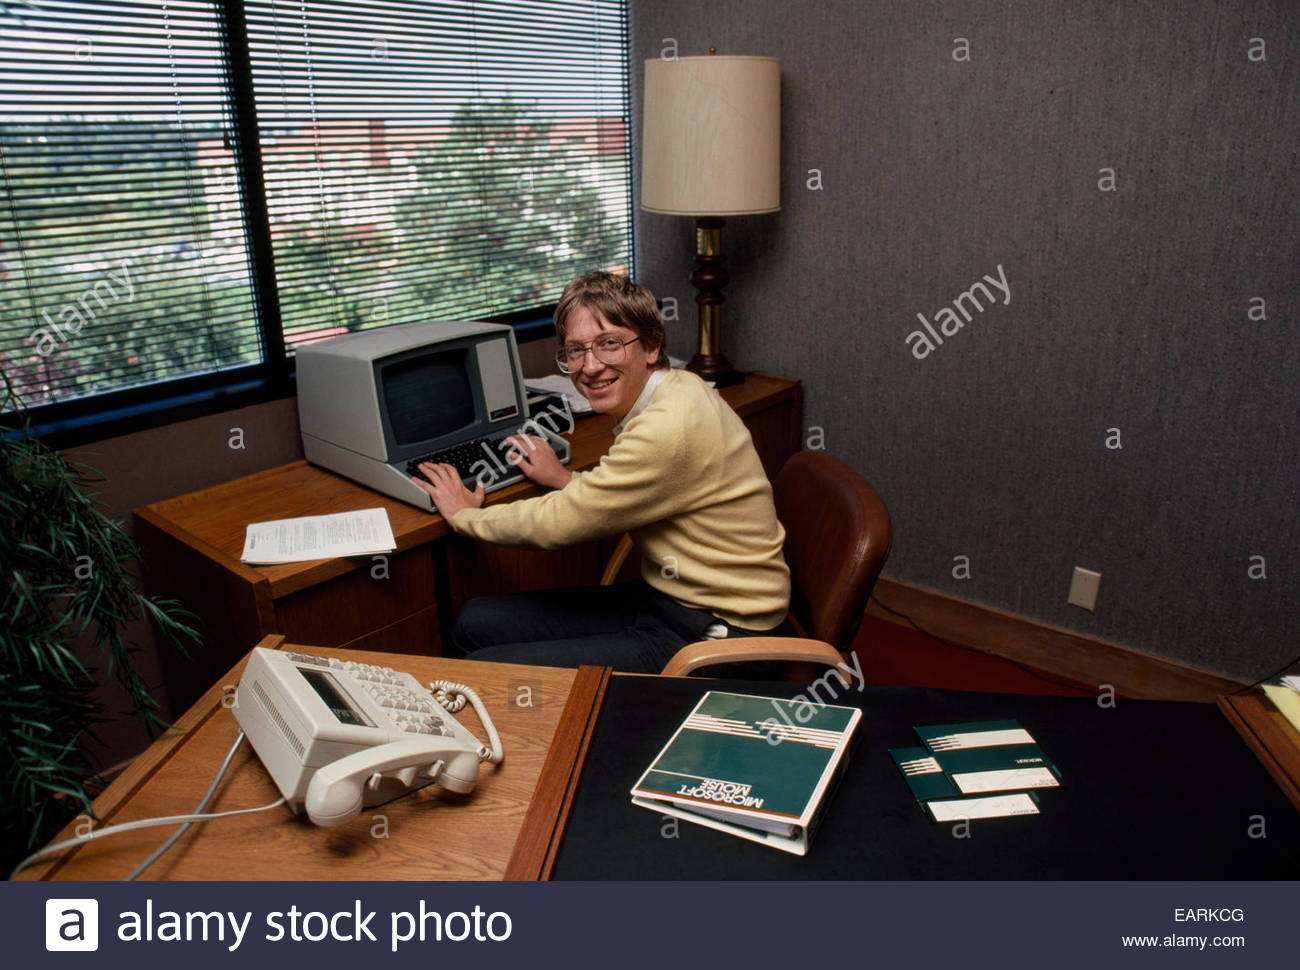 Mr Bill Gates Working In His Office In His Younger Years